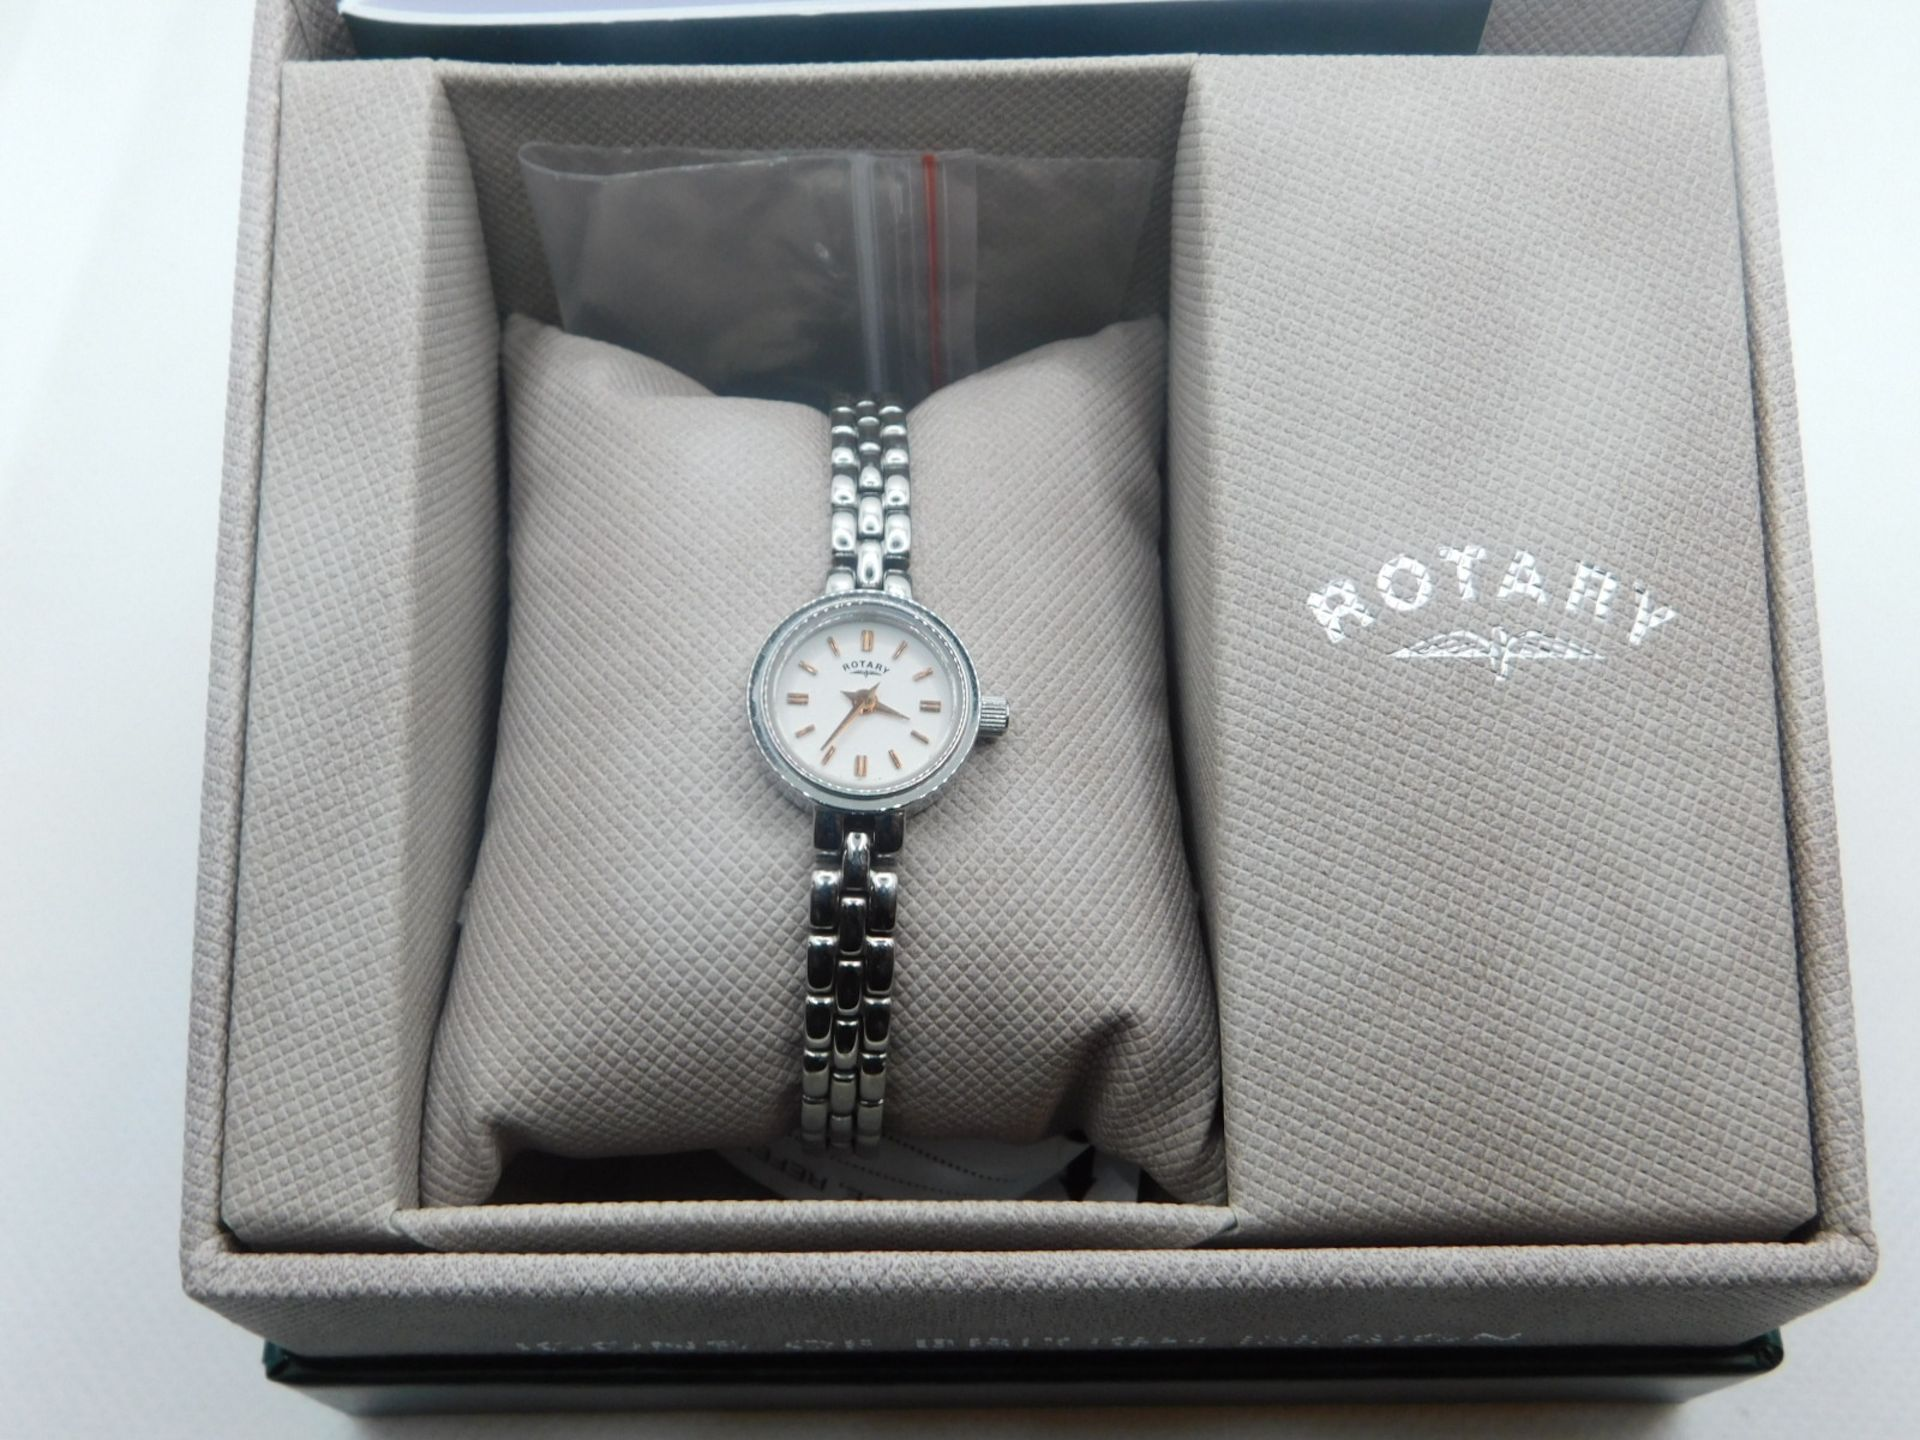 1 BOXED ROTARY BALMORAL LADIES WATCH MODEL LB02541/70 RRP £129.99